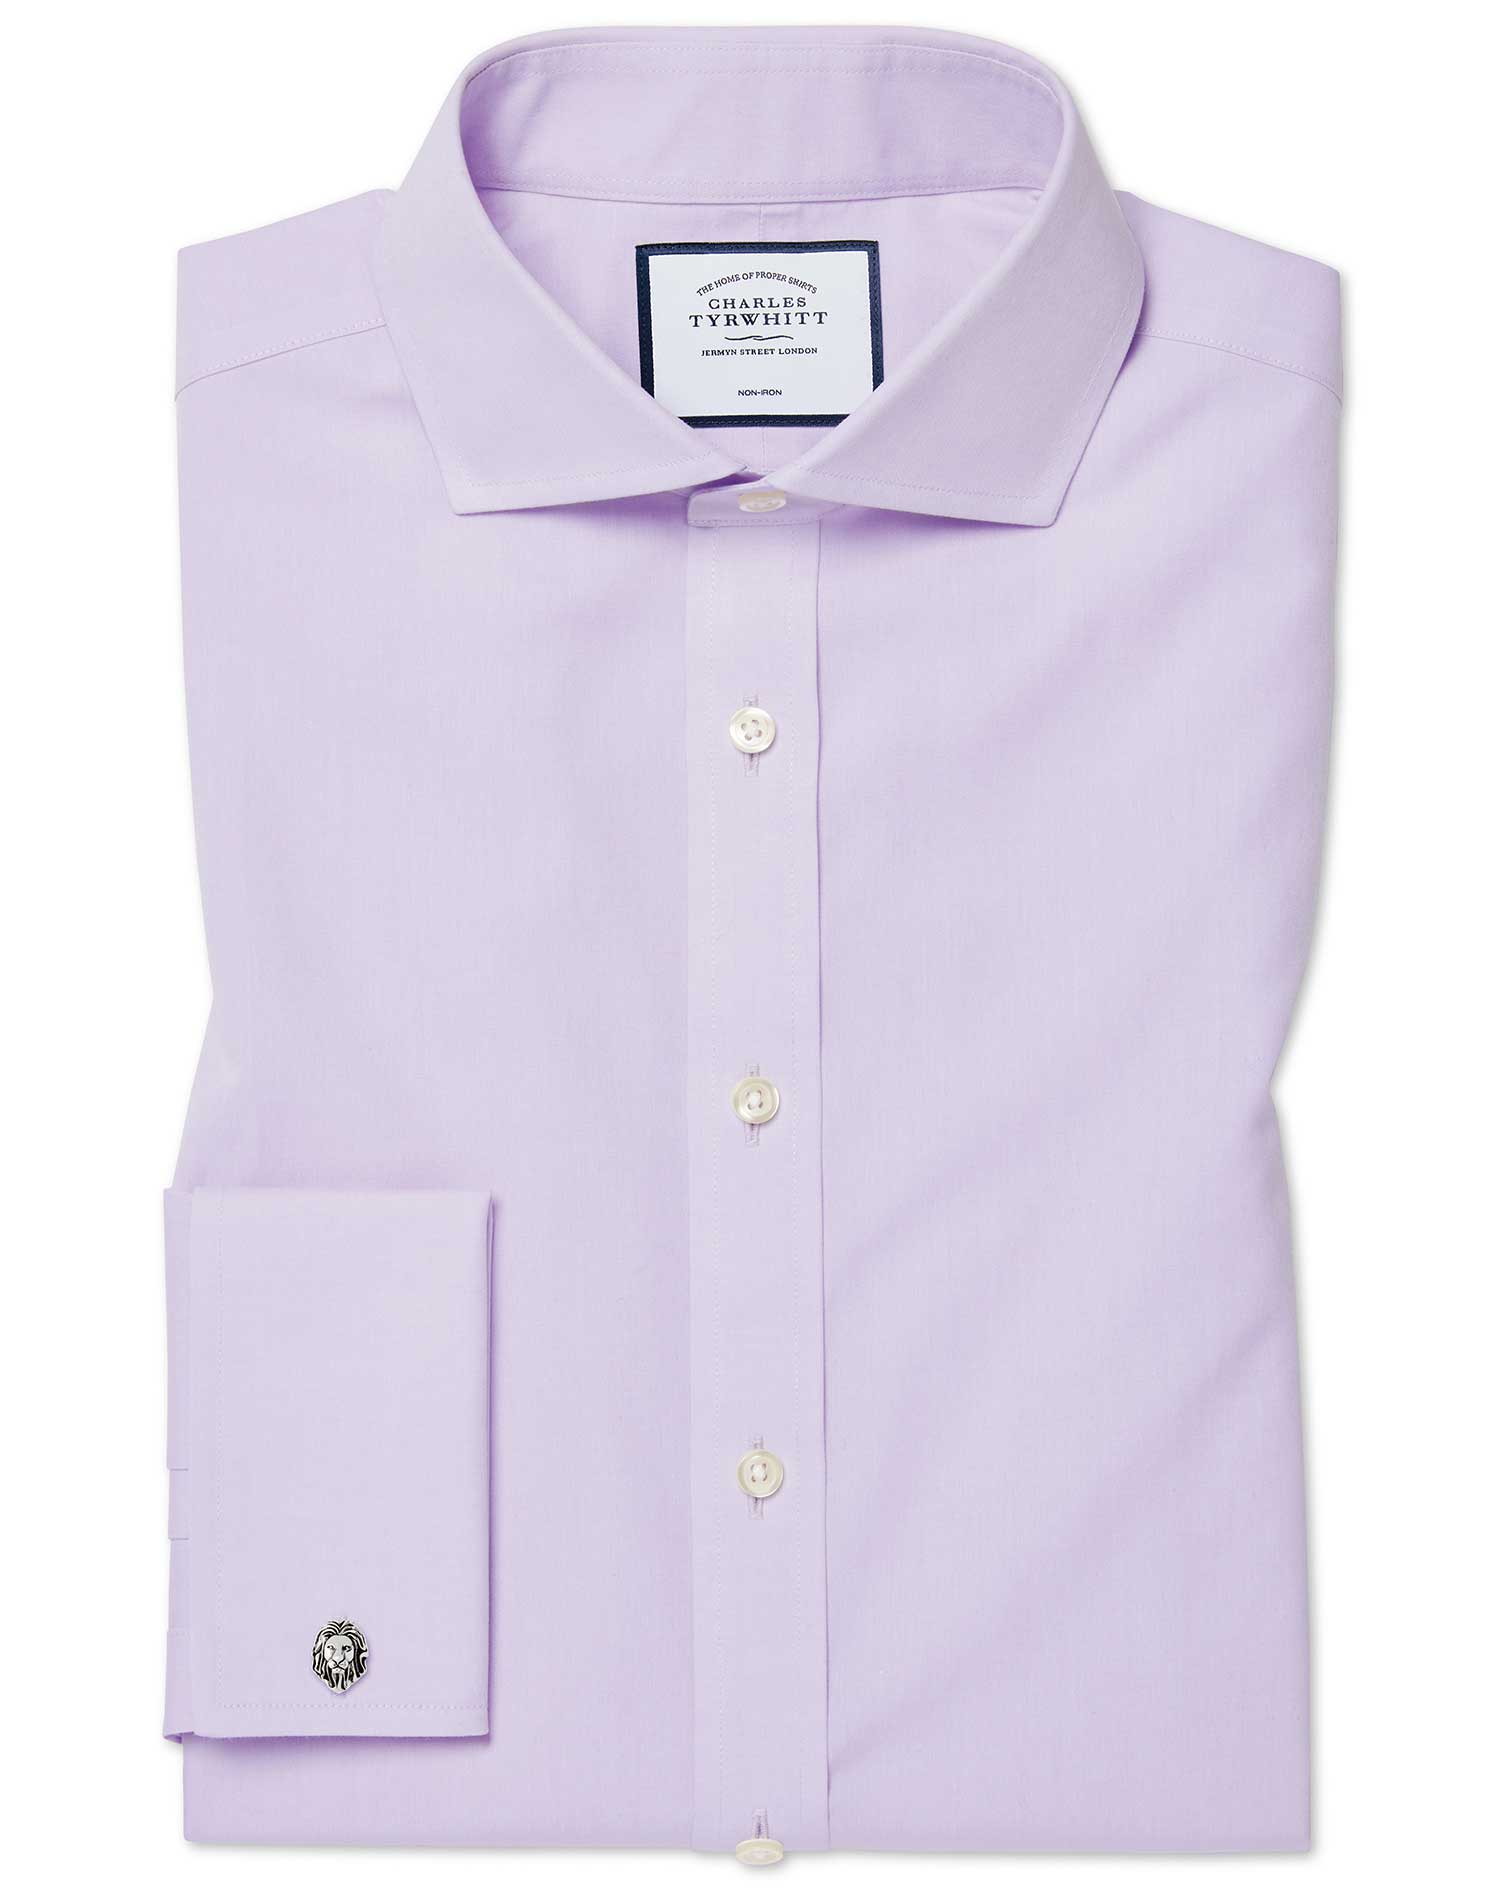 Extra Slim Fit Non-Iron Cutaway Collar Poplin Lilac Cotton Formal Shirt Single Cuff Size 15/33 by Ch